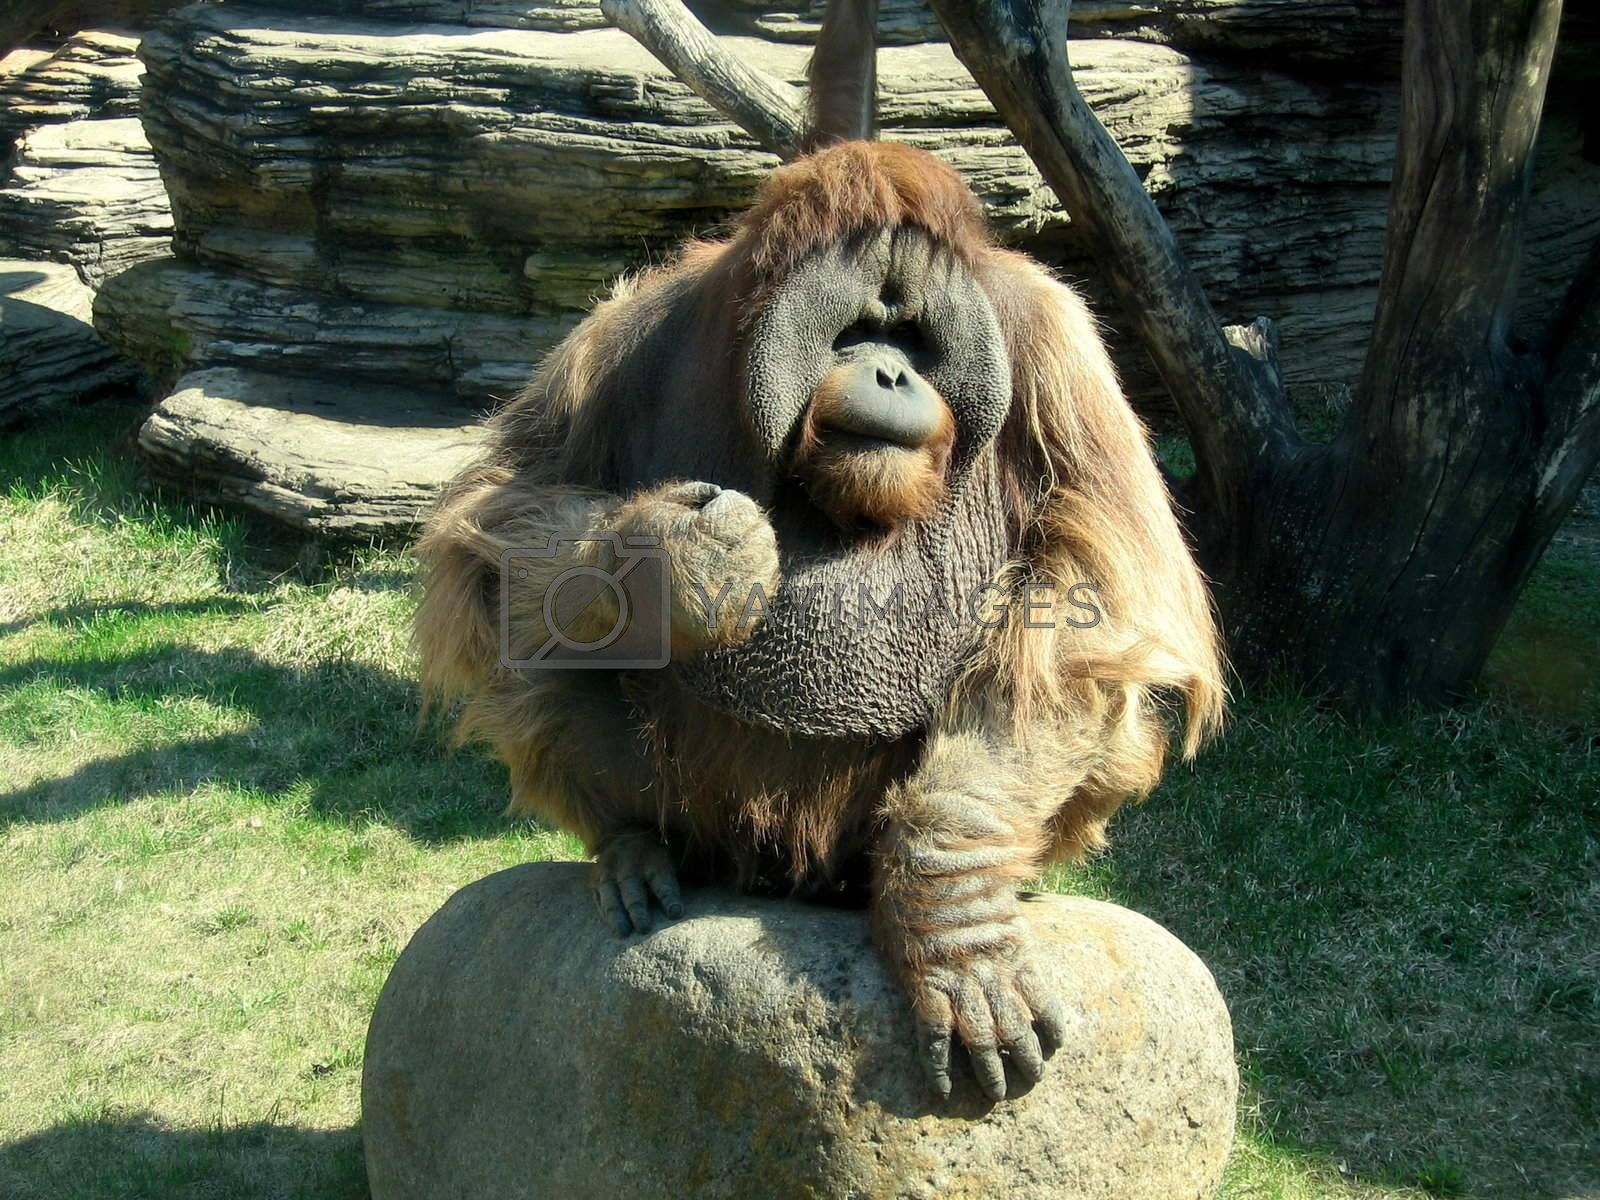 Royalty free image of Angry orangutan by tomatto